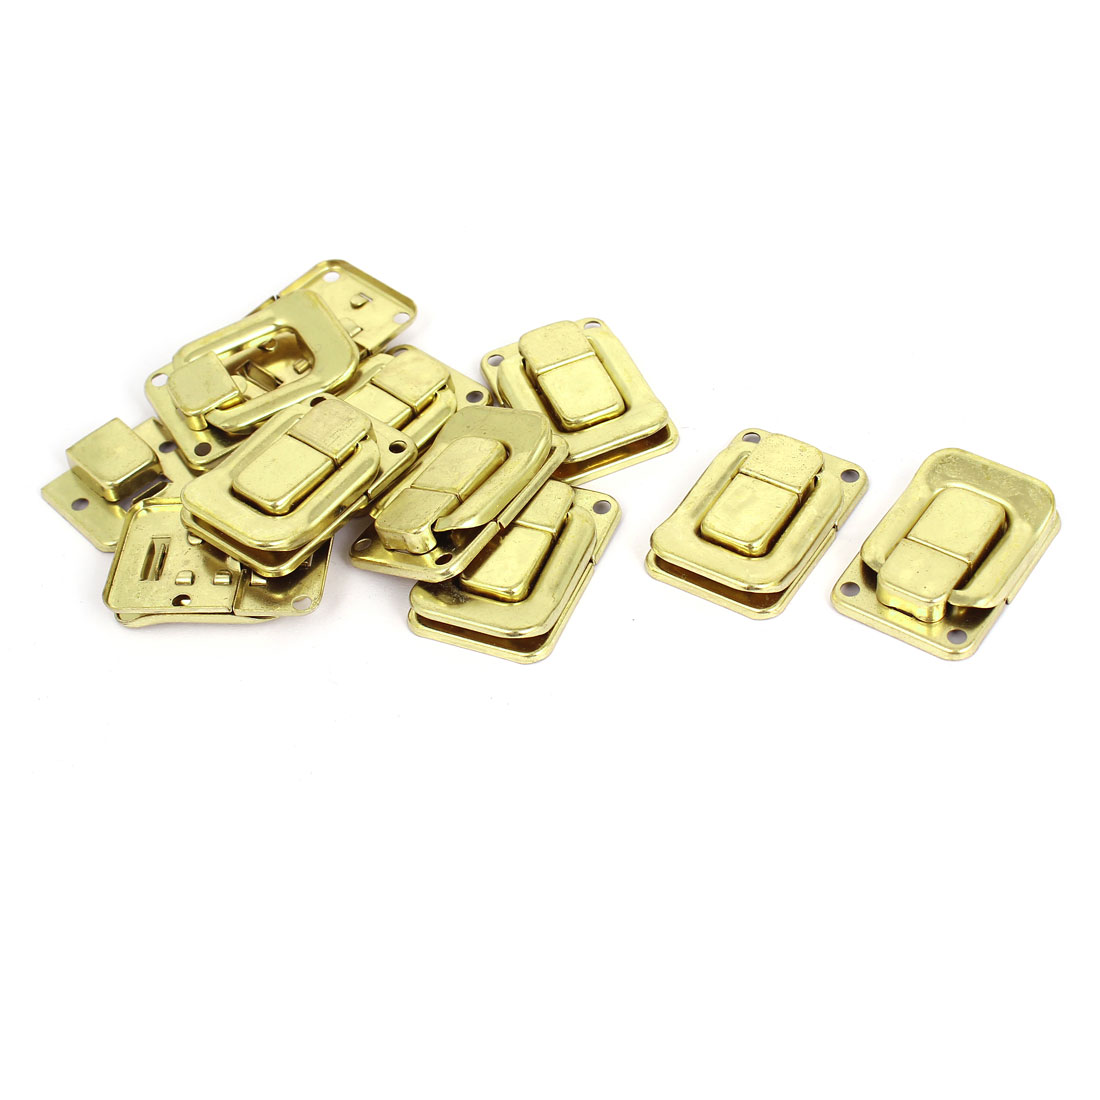 Suitcase Case Box Trunk Metal Toggle Catch Latch Gold Tone 40mmx27mm 10 Pcs